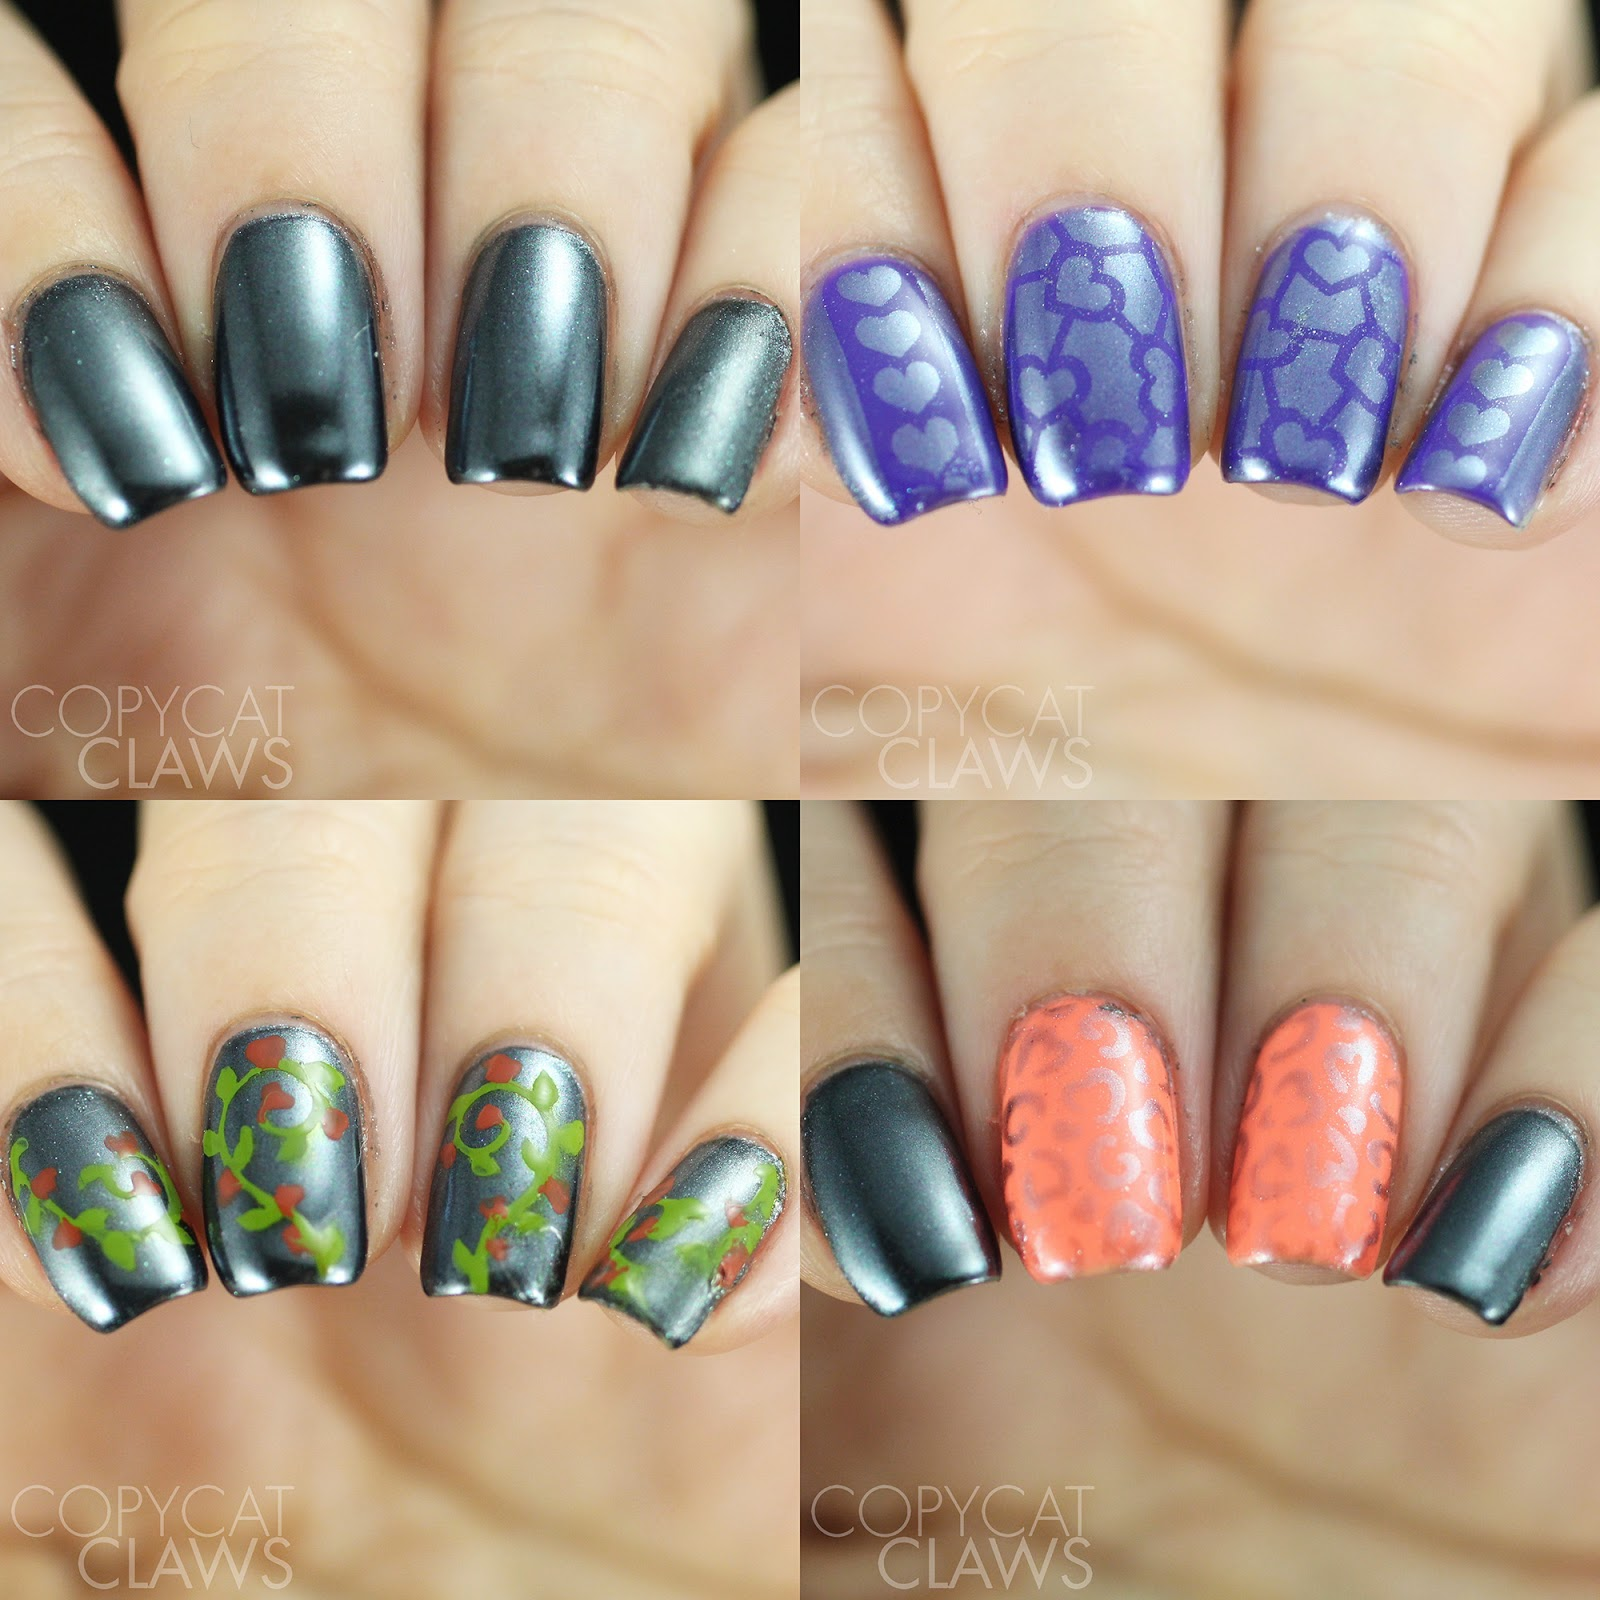 Copycat Claws: Whats Up Nails Black Chrome Powder and Stencil Review